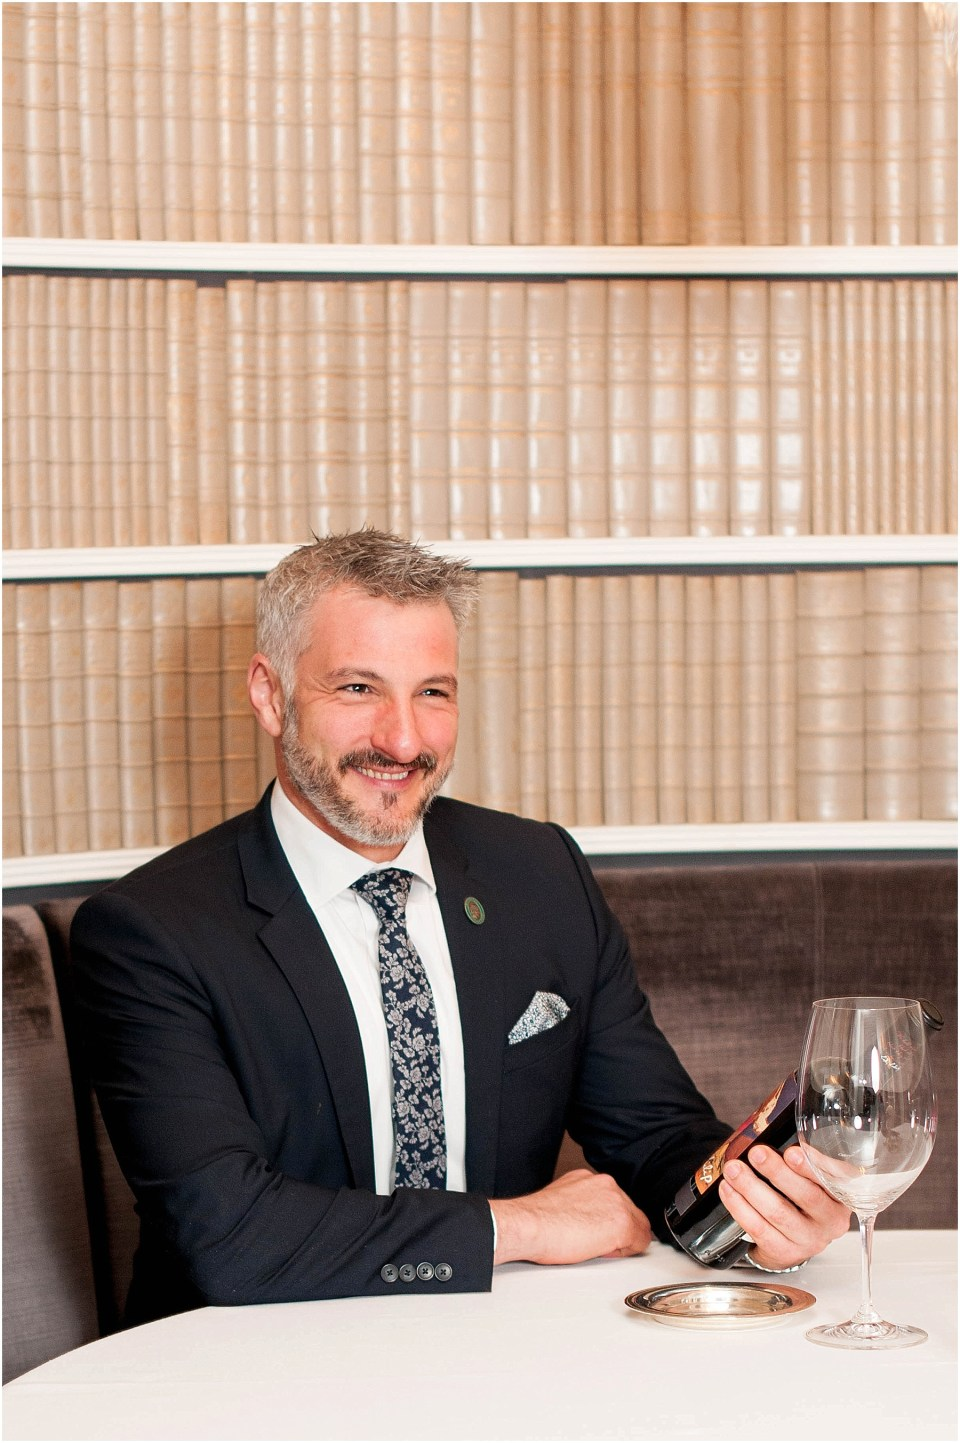 Sommelier and Wine Director David Metz at Michelin Star restaurant Plume in a luxury hotel The Jefferson Hotel 3